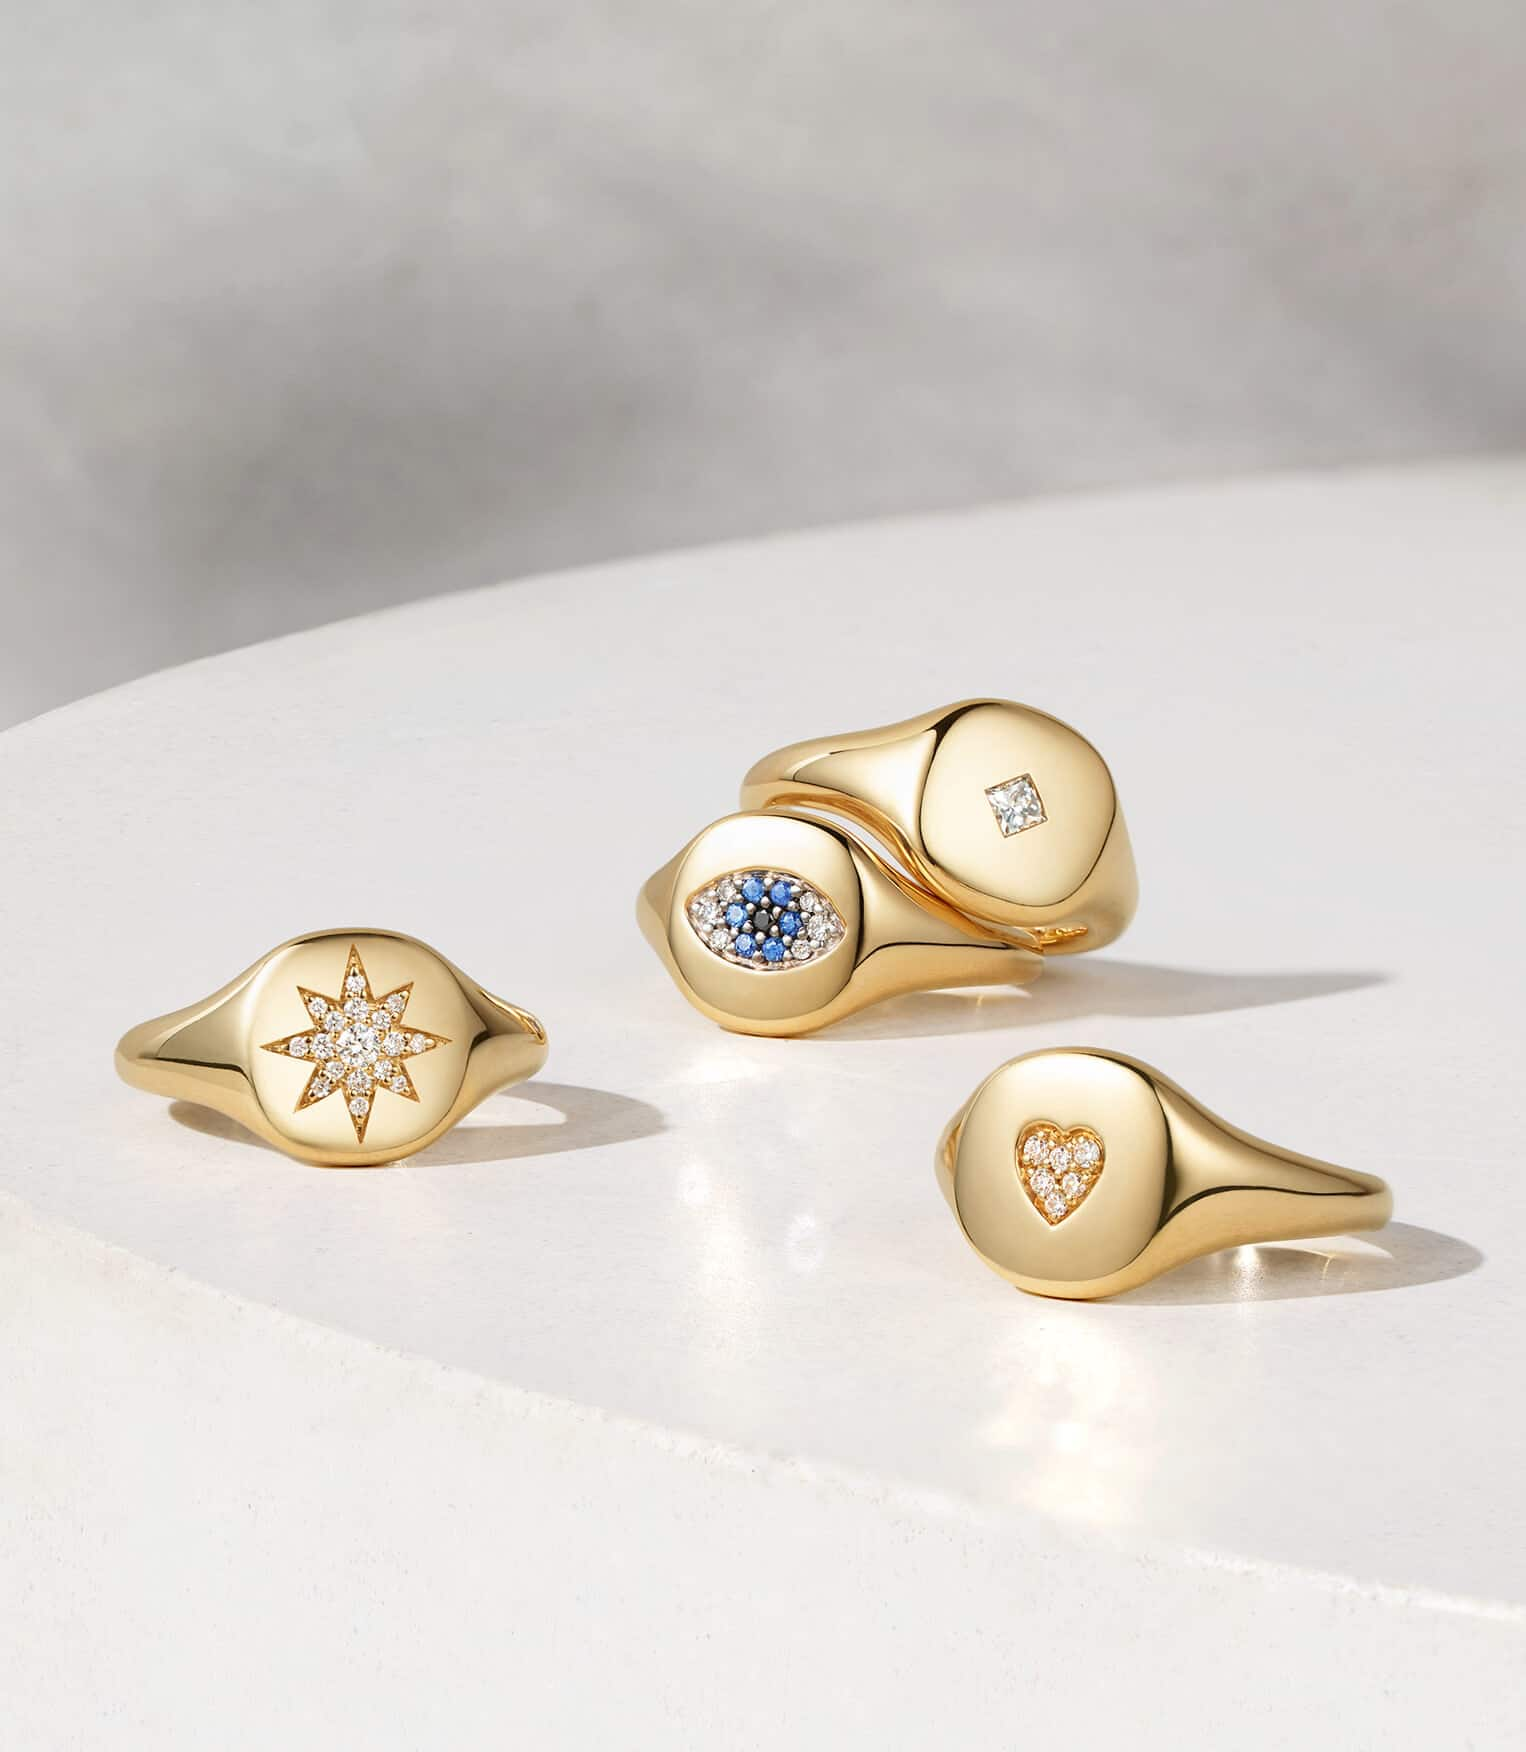 Four David Yurman pinky rings in 18K yellow gold with pavé diamonds and sapphires, all scattered on a white circular stone surface.